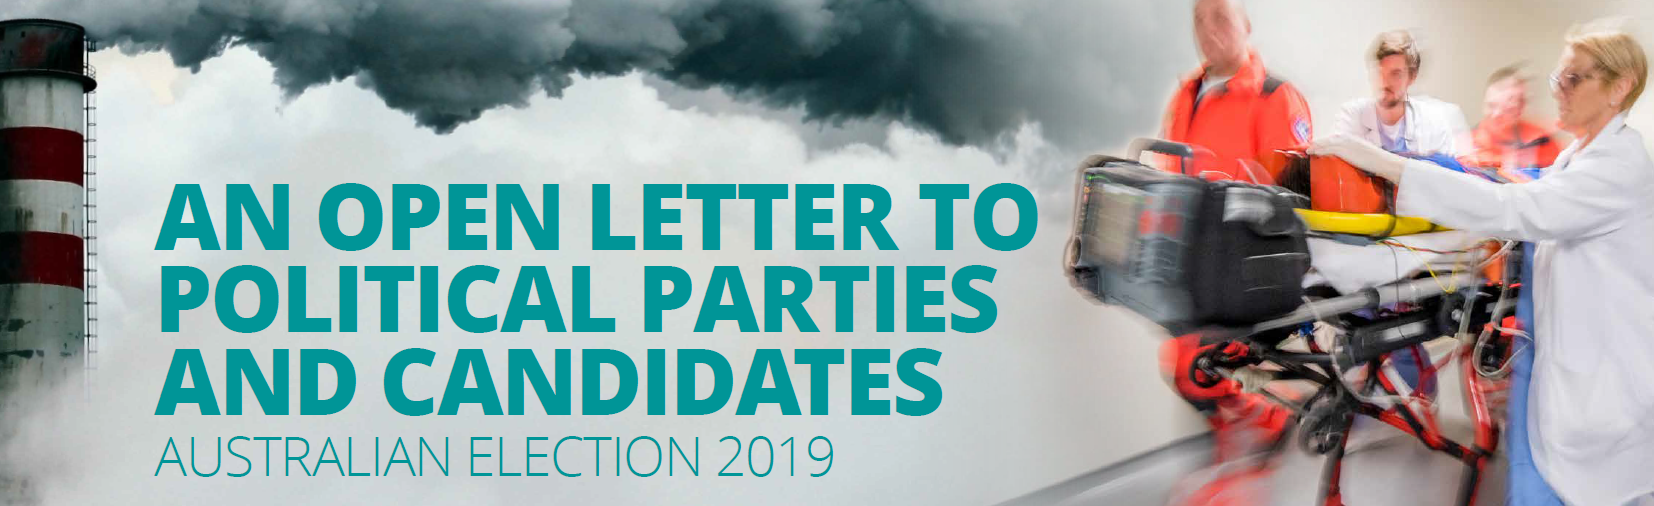 Call for #AusVotesHealth parties, candidates to recognise climate change as